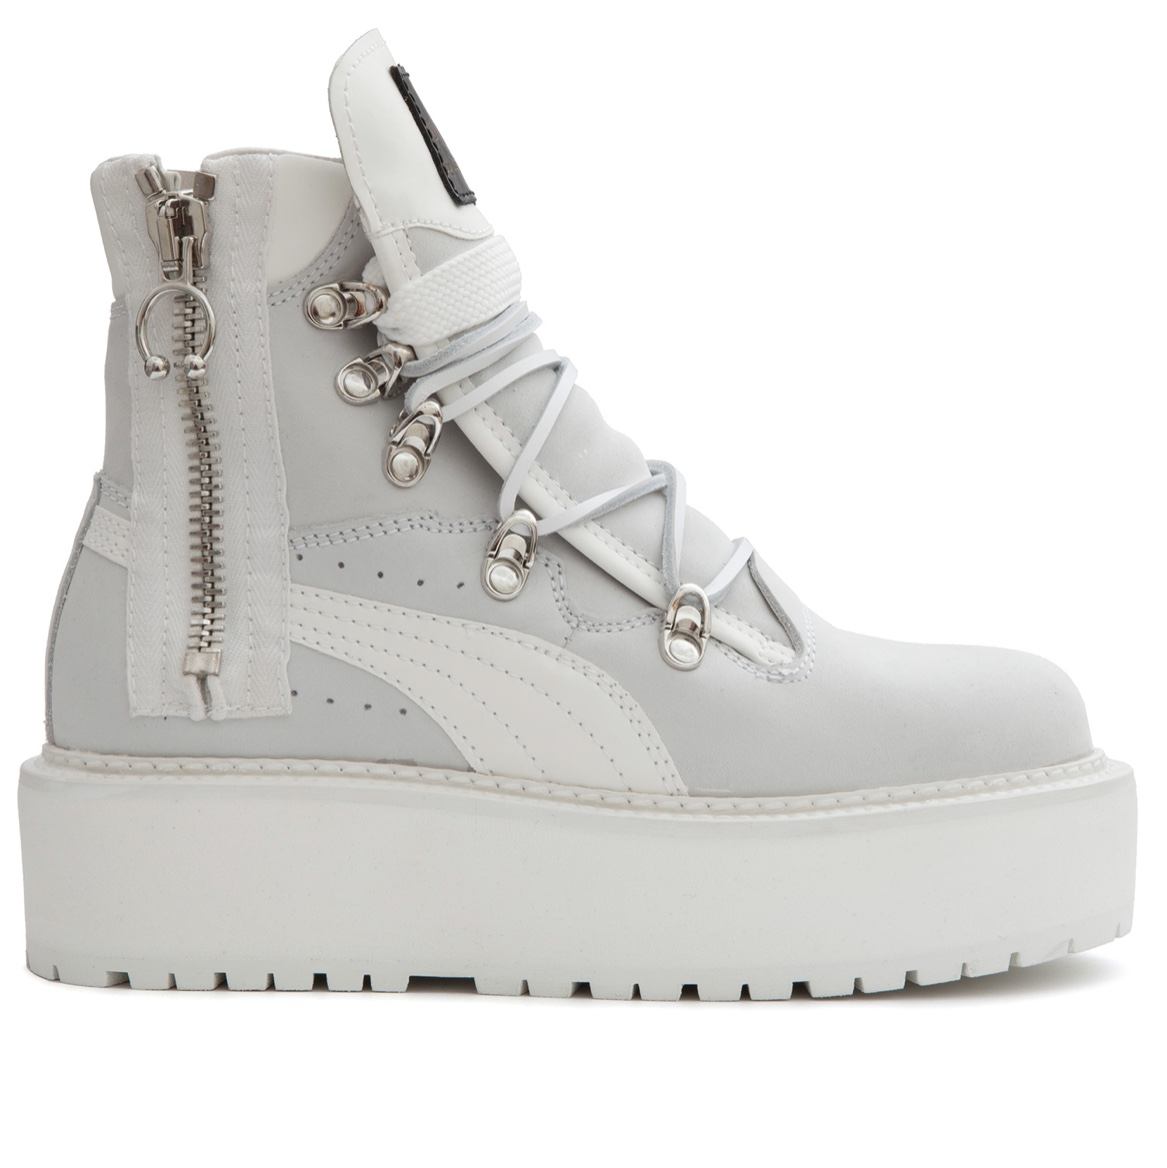 separation shoes 5a140 e0cb0 Awesome condition Fenty Puma boots by Rihanna. White ...